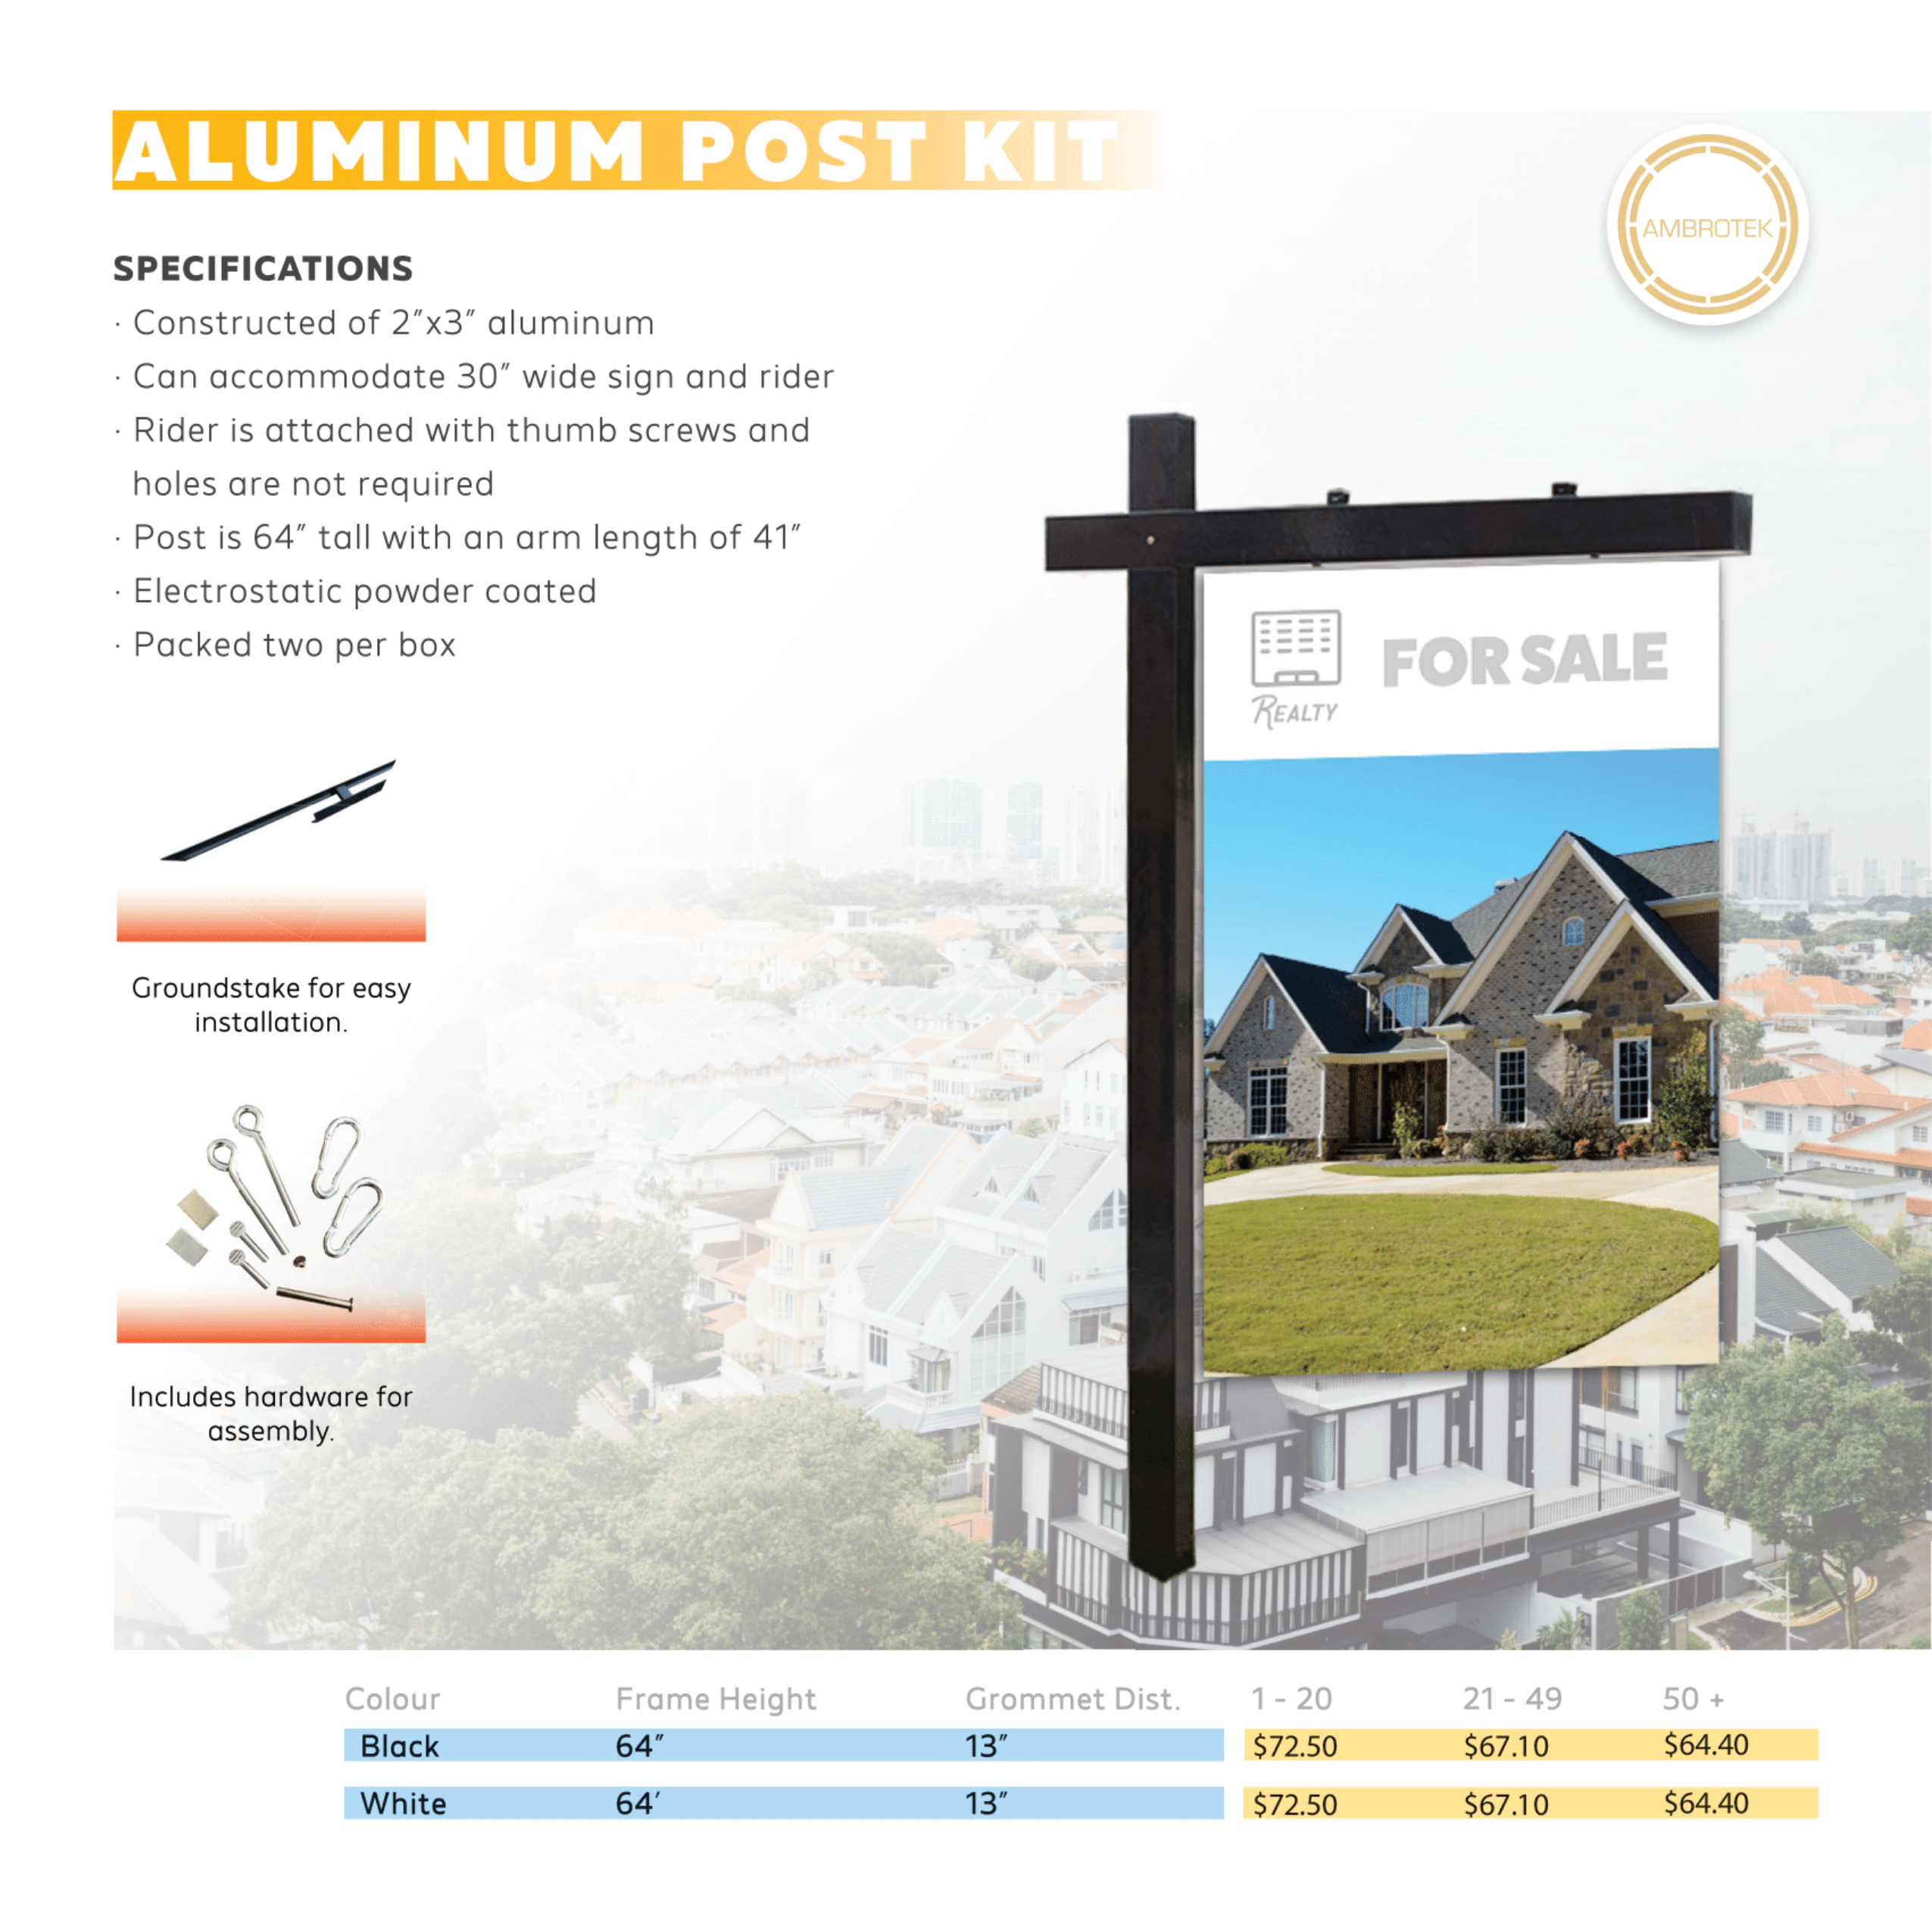 Aluminum Post Kit